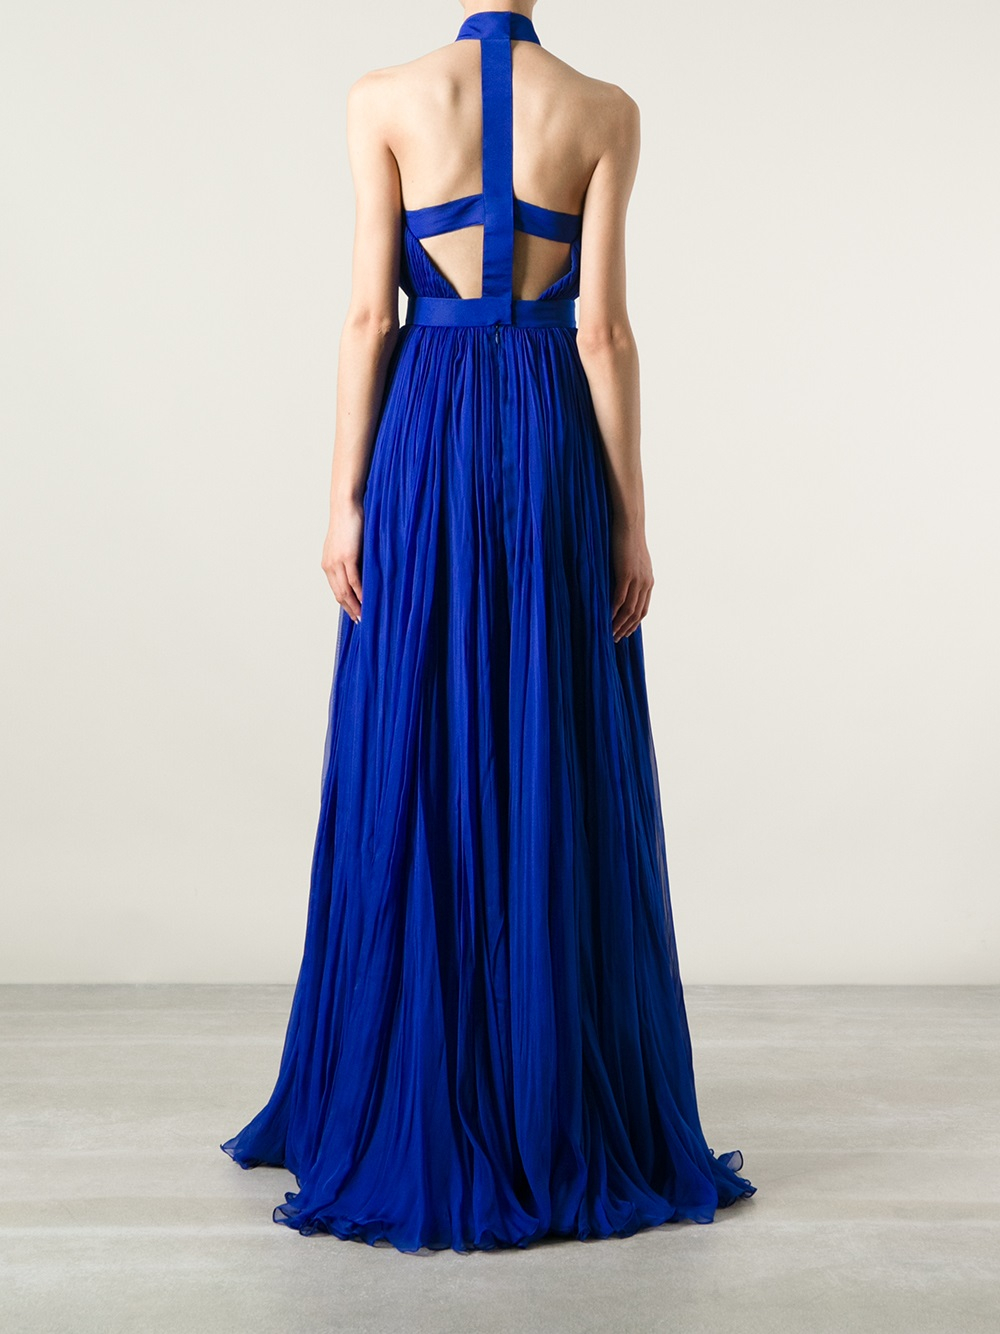 Lyst - Alexander Mcqueen Flared Layered Evening Gown in Blue